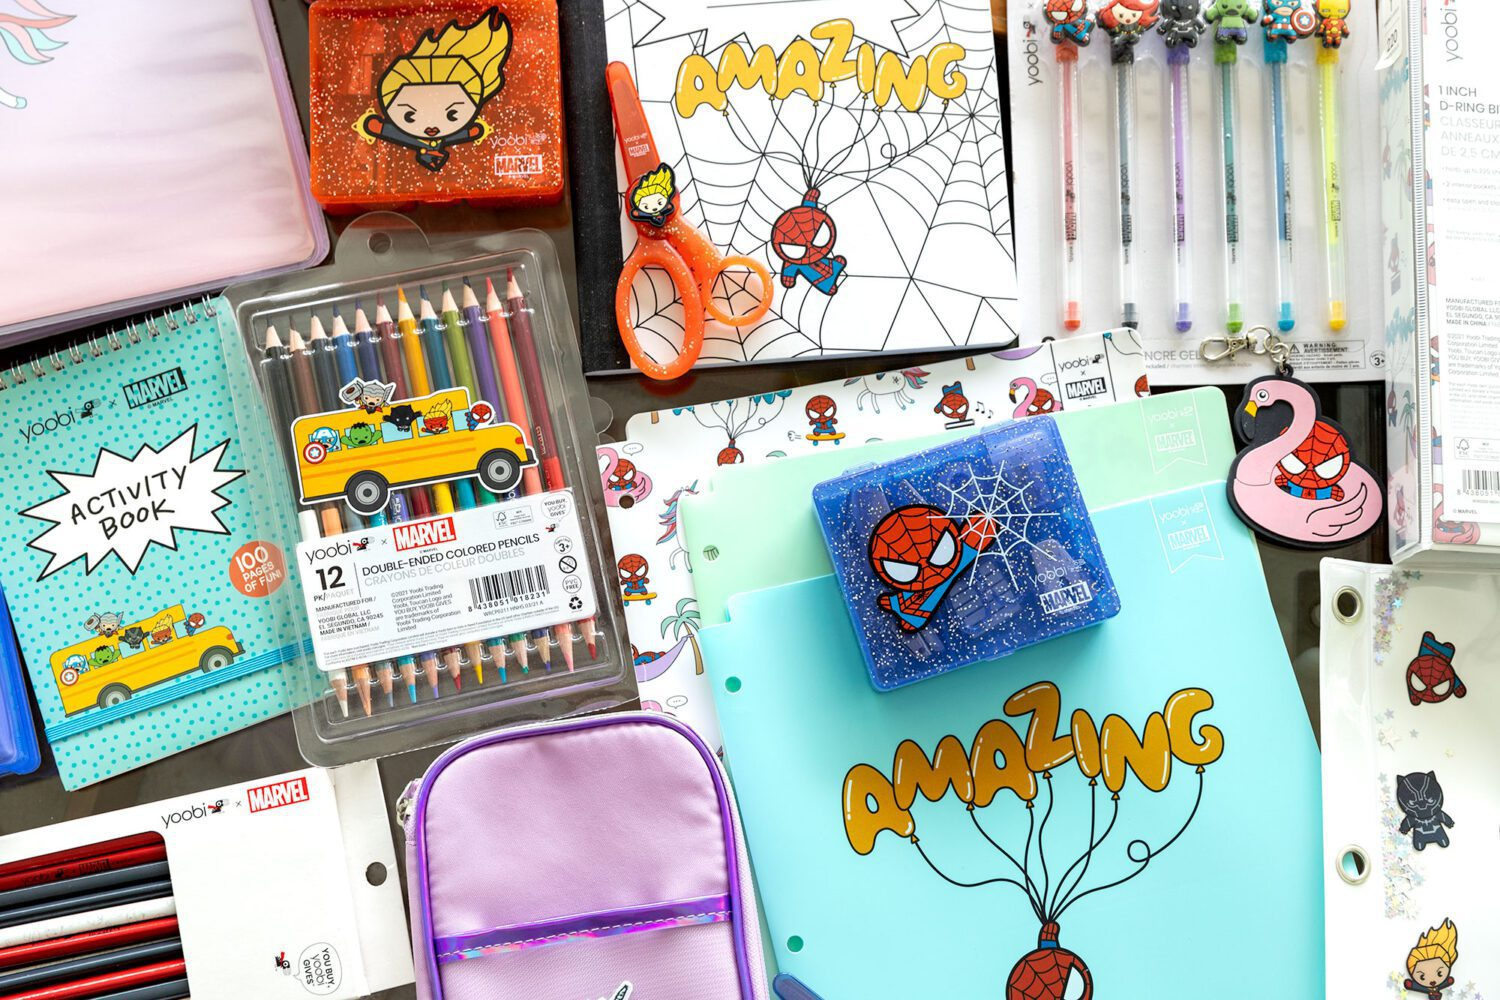 New yoobi Marvel collection of school supplies laid out on a table